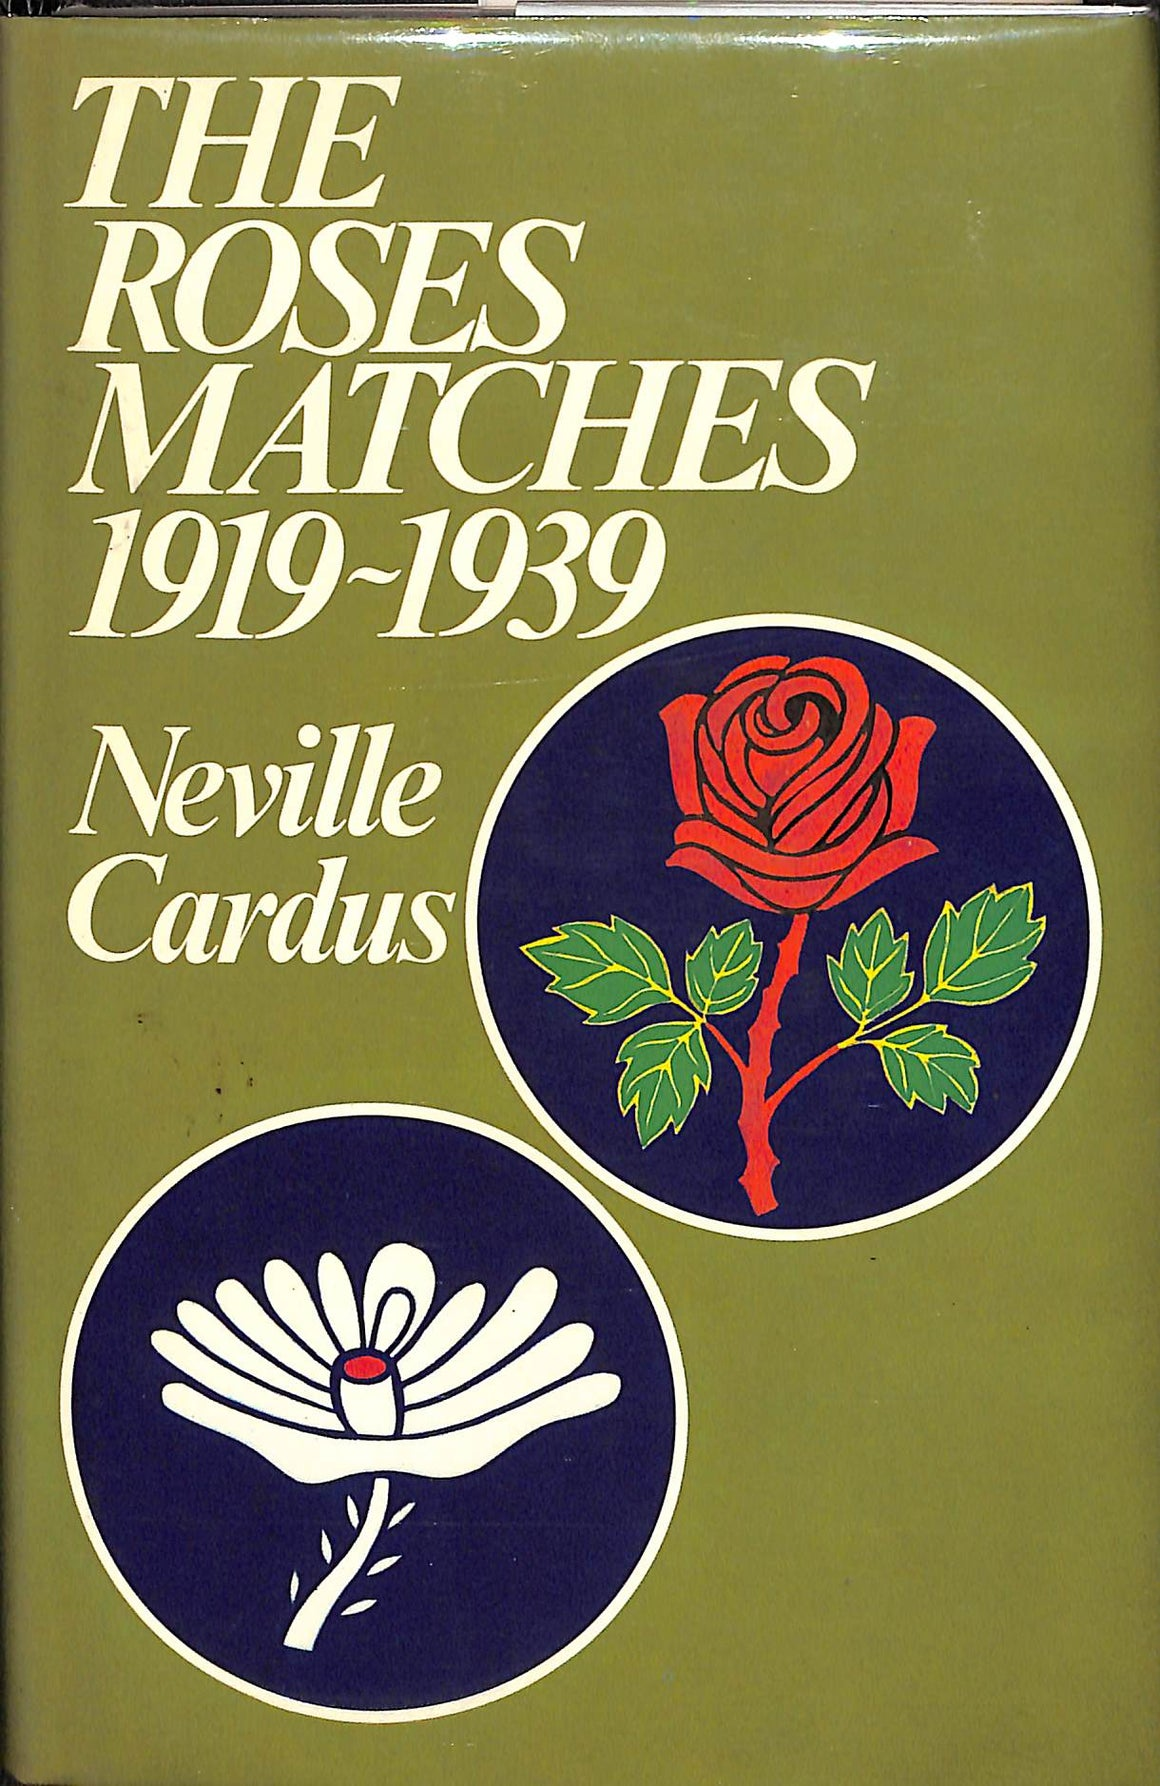 The Rose Matches 1919-1939